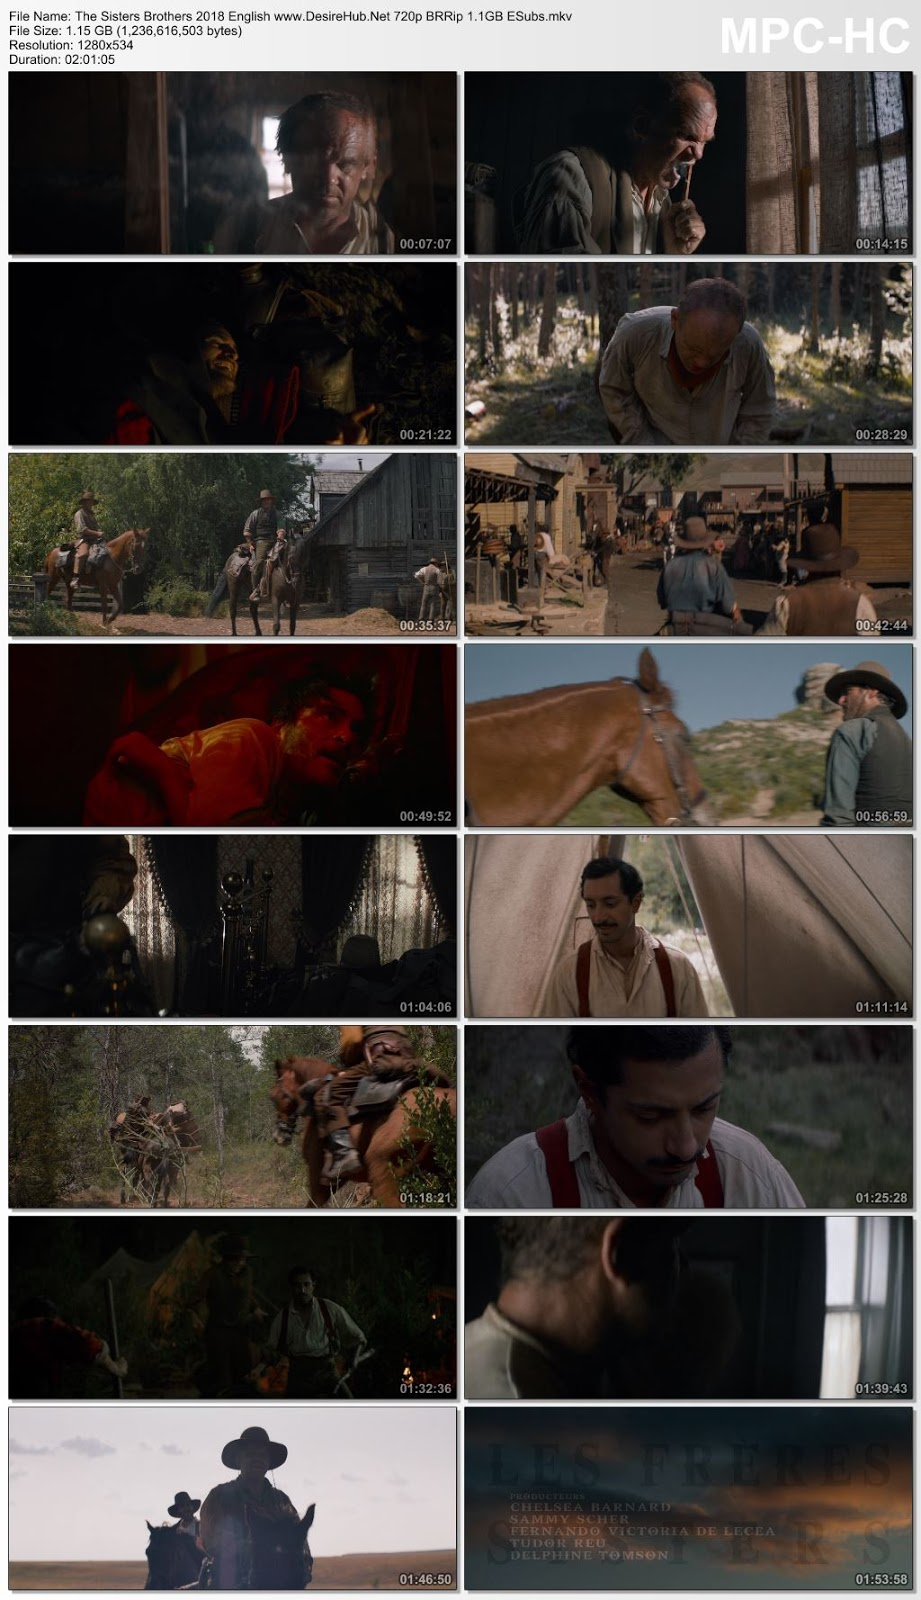 The Sisters Brothers 2018 English 720p BRRip 1.1GB ESubs Desirehub